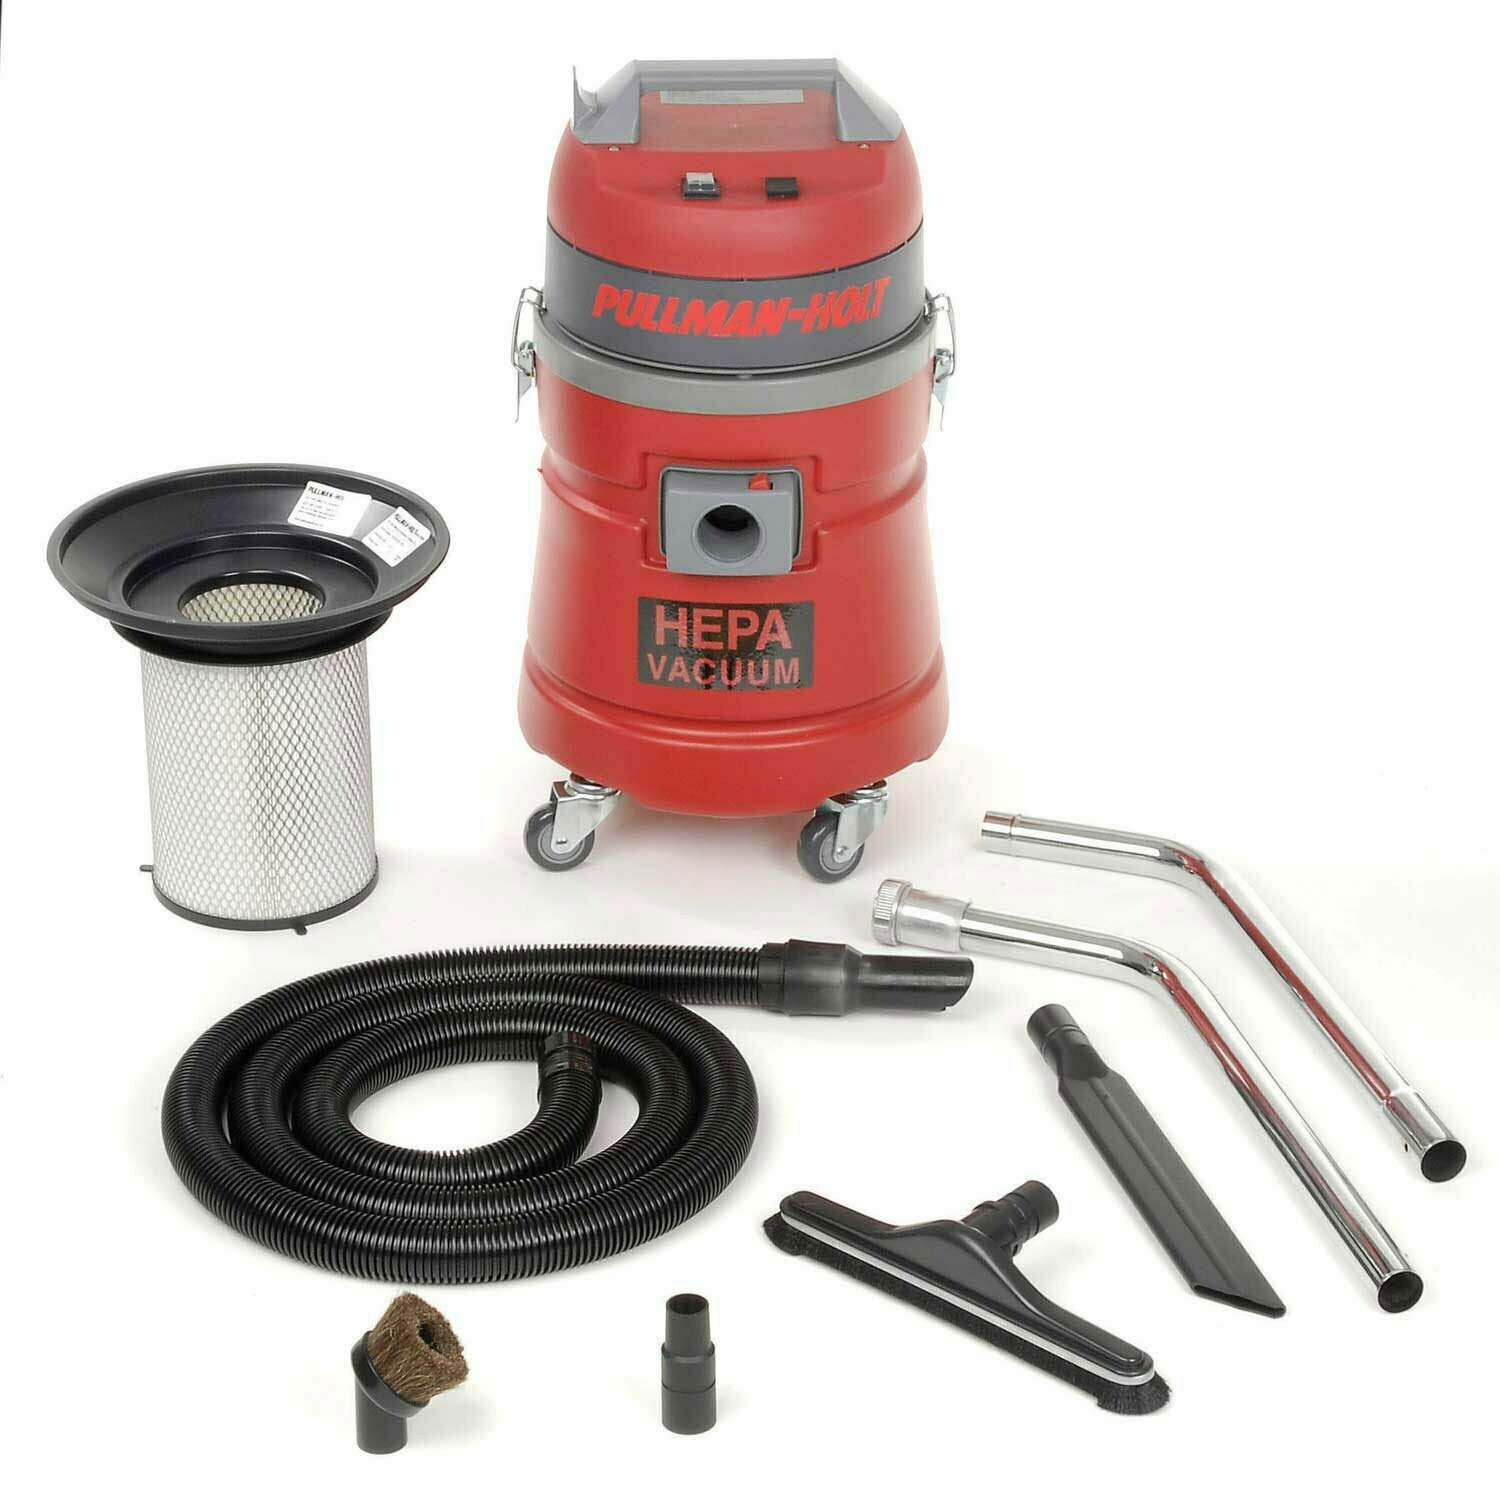 Pullman-Holt HEPA Dry Vacuum, 45DRY, w/Tool Kit (Special Order)